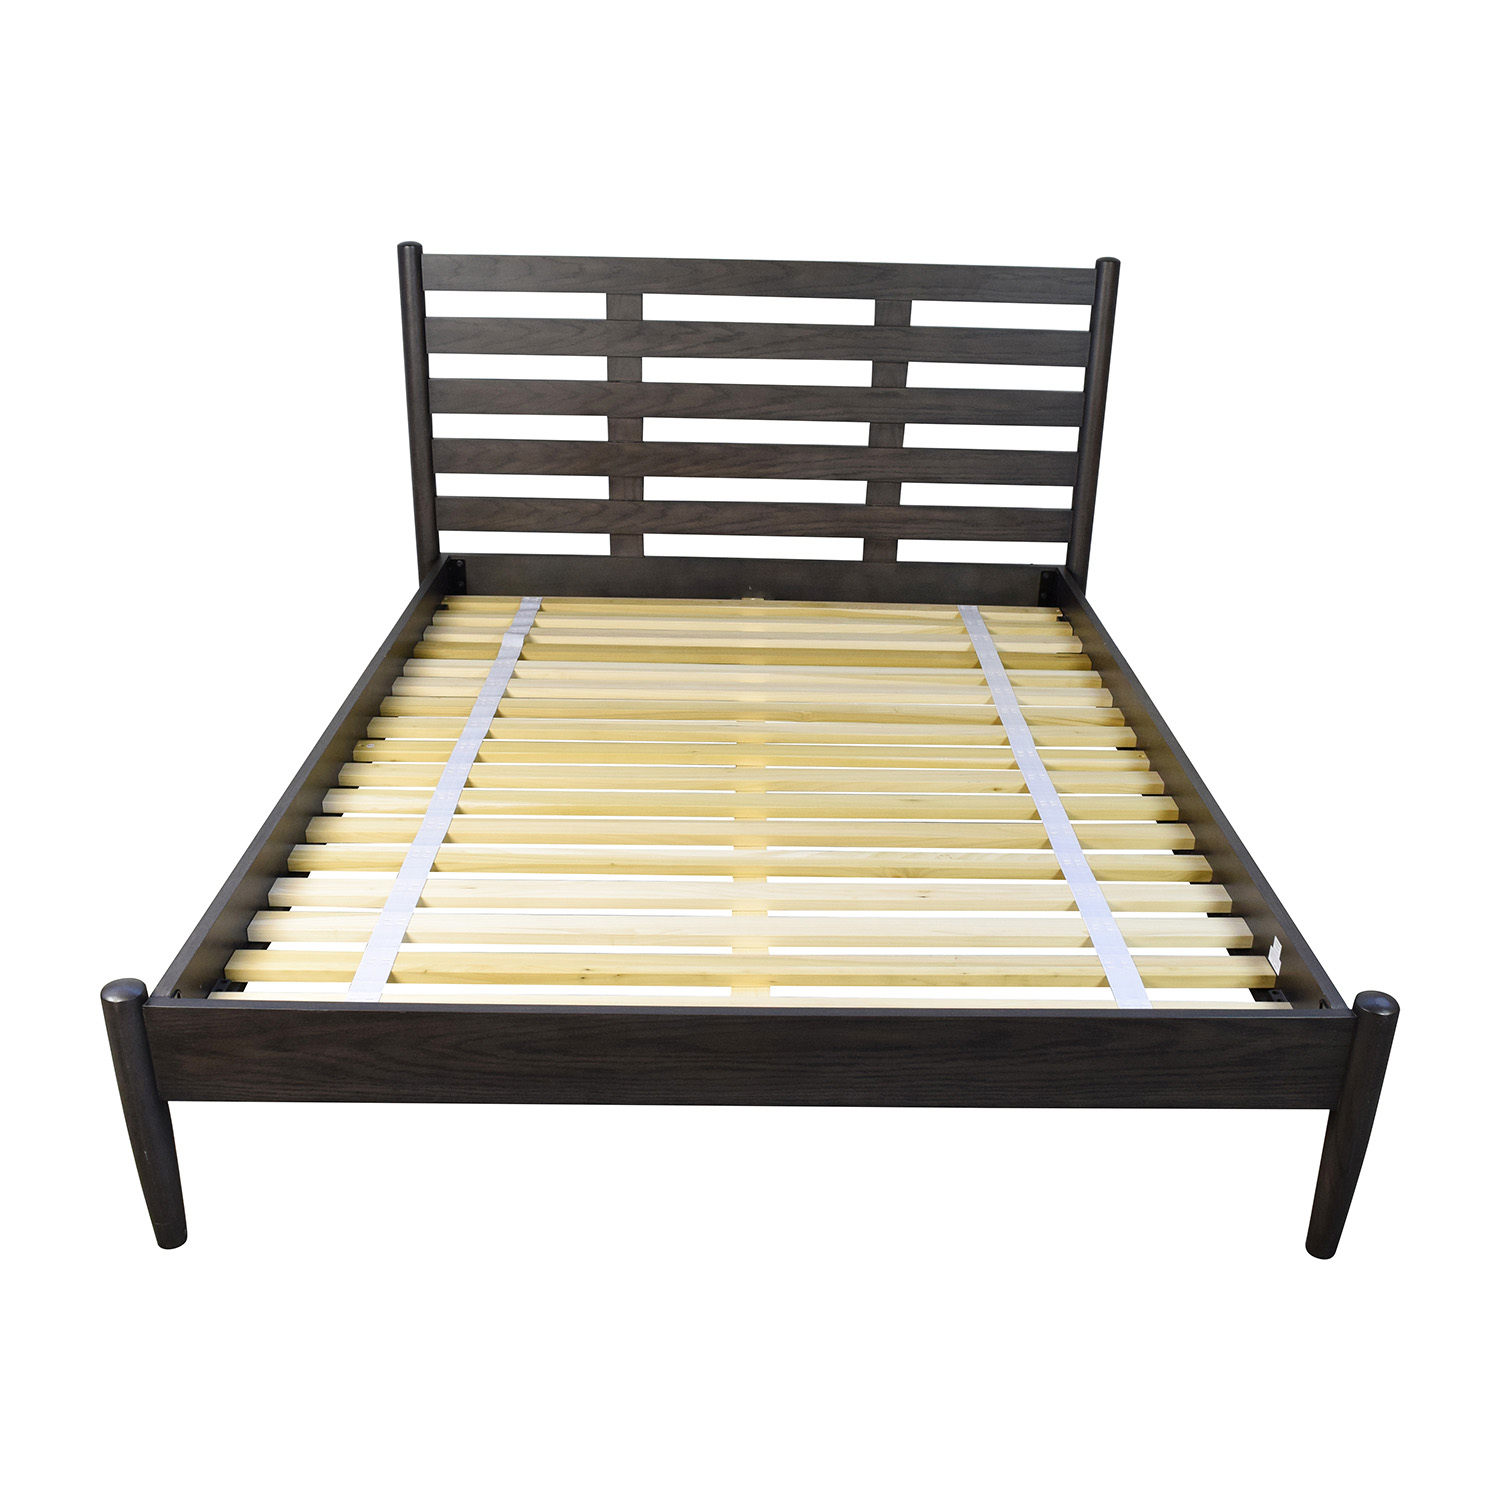 43% OFF - Crate and Barrel Crate & Barrel Barnes Queen Bed Frame / Beds